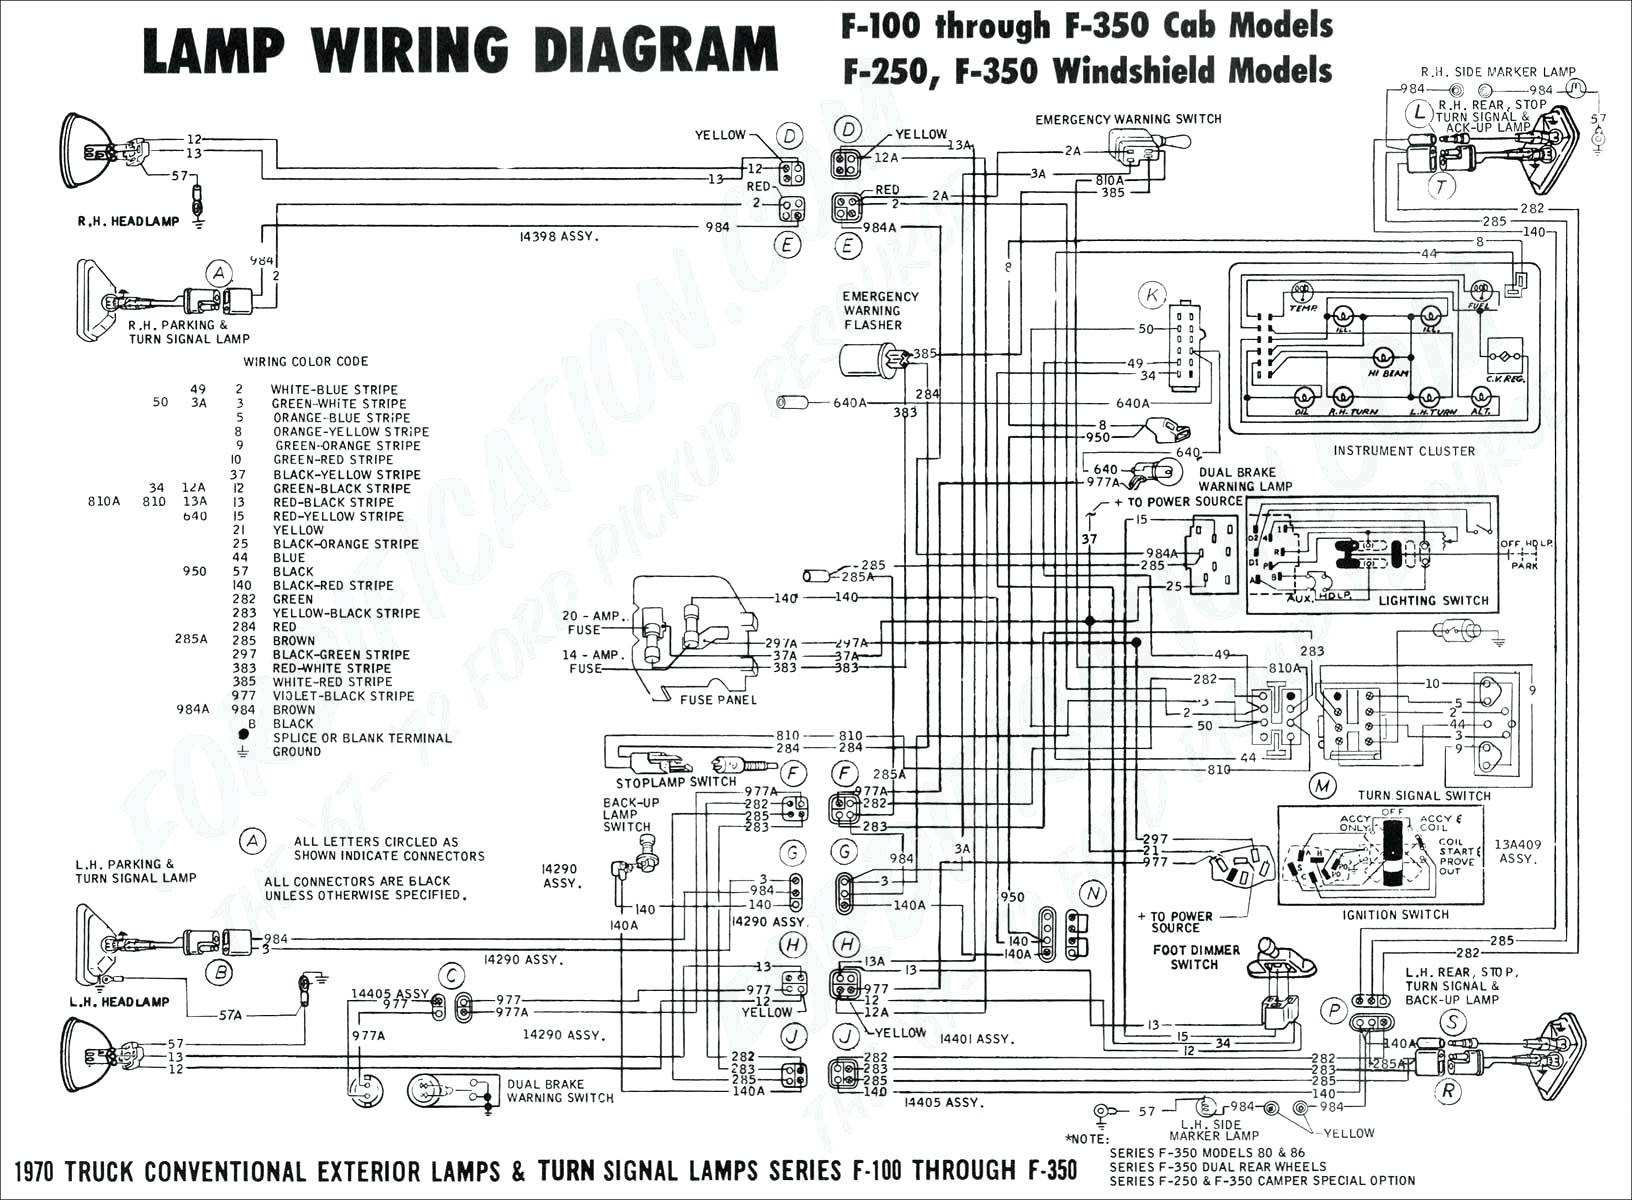 1997 Chevy S10 Wiring Diagram Collection